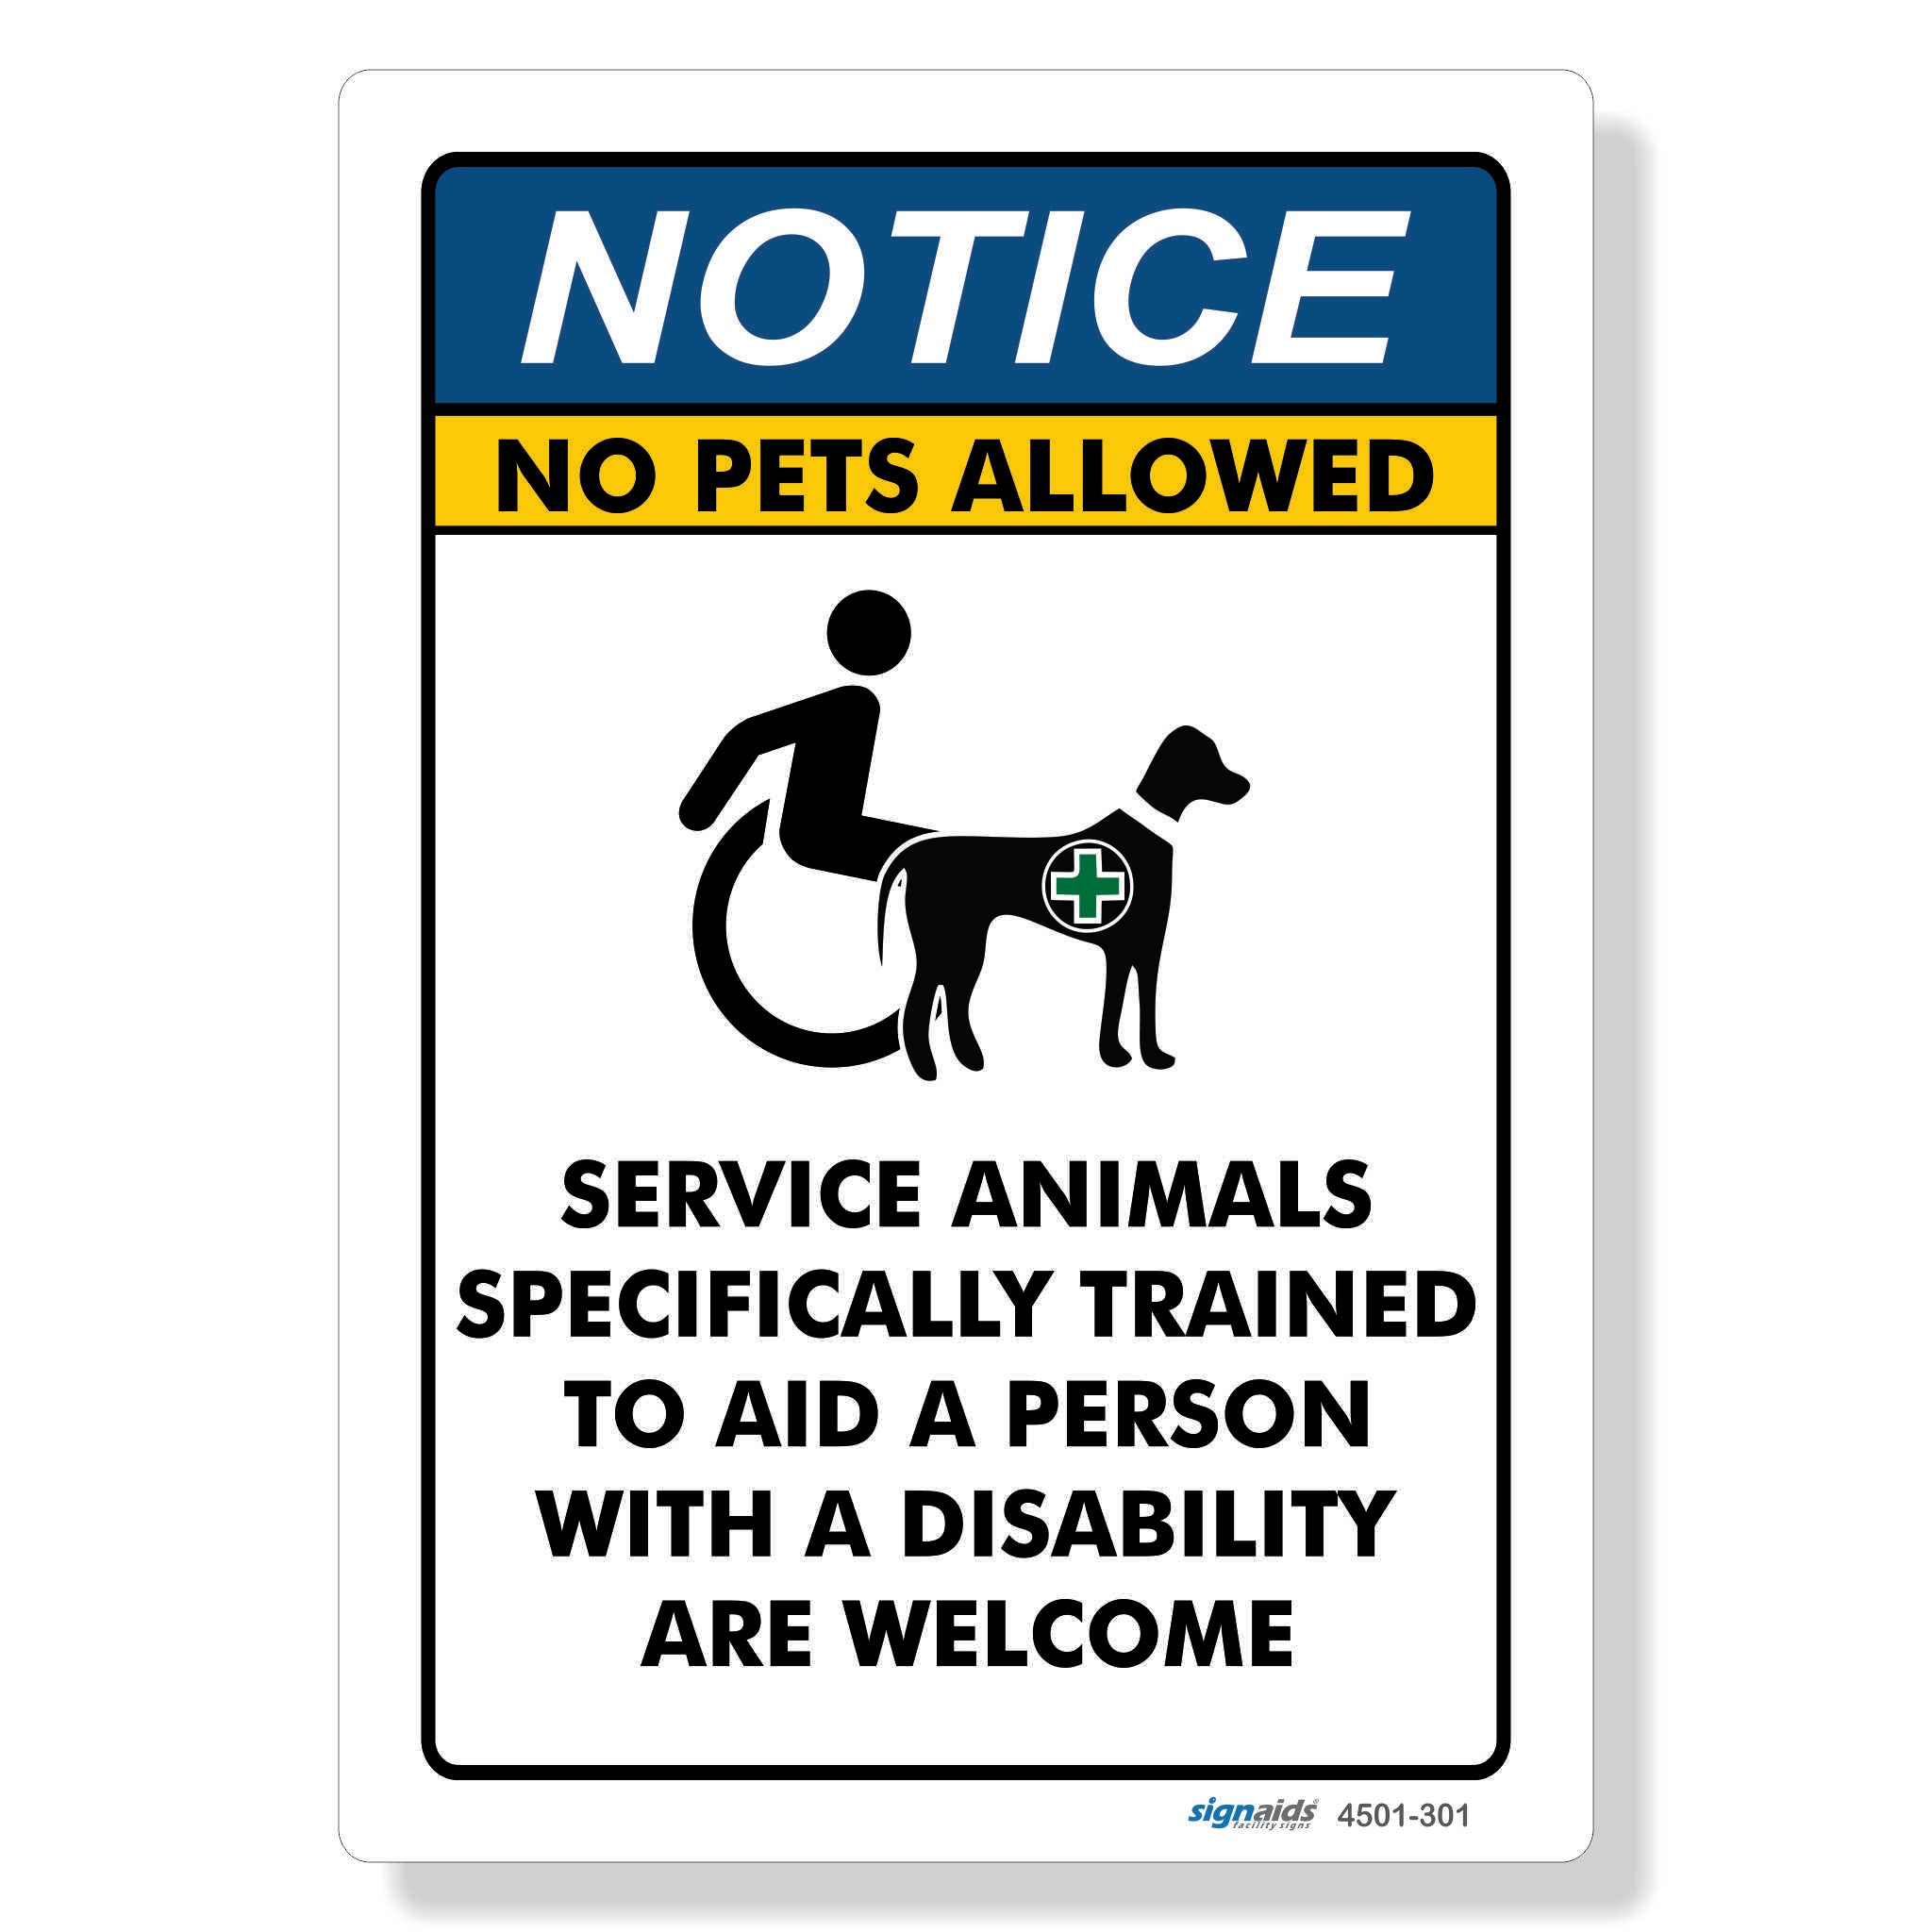 NOTICE - No pets allowed, service animals welcome